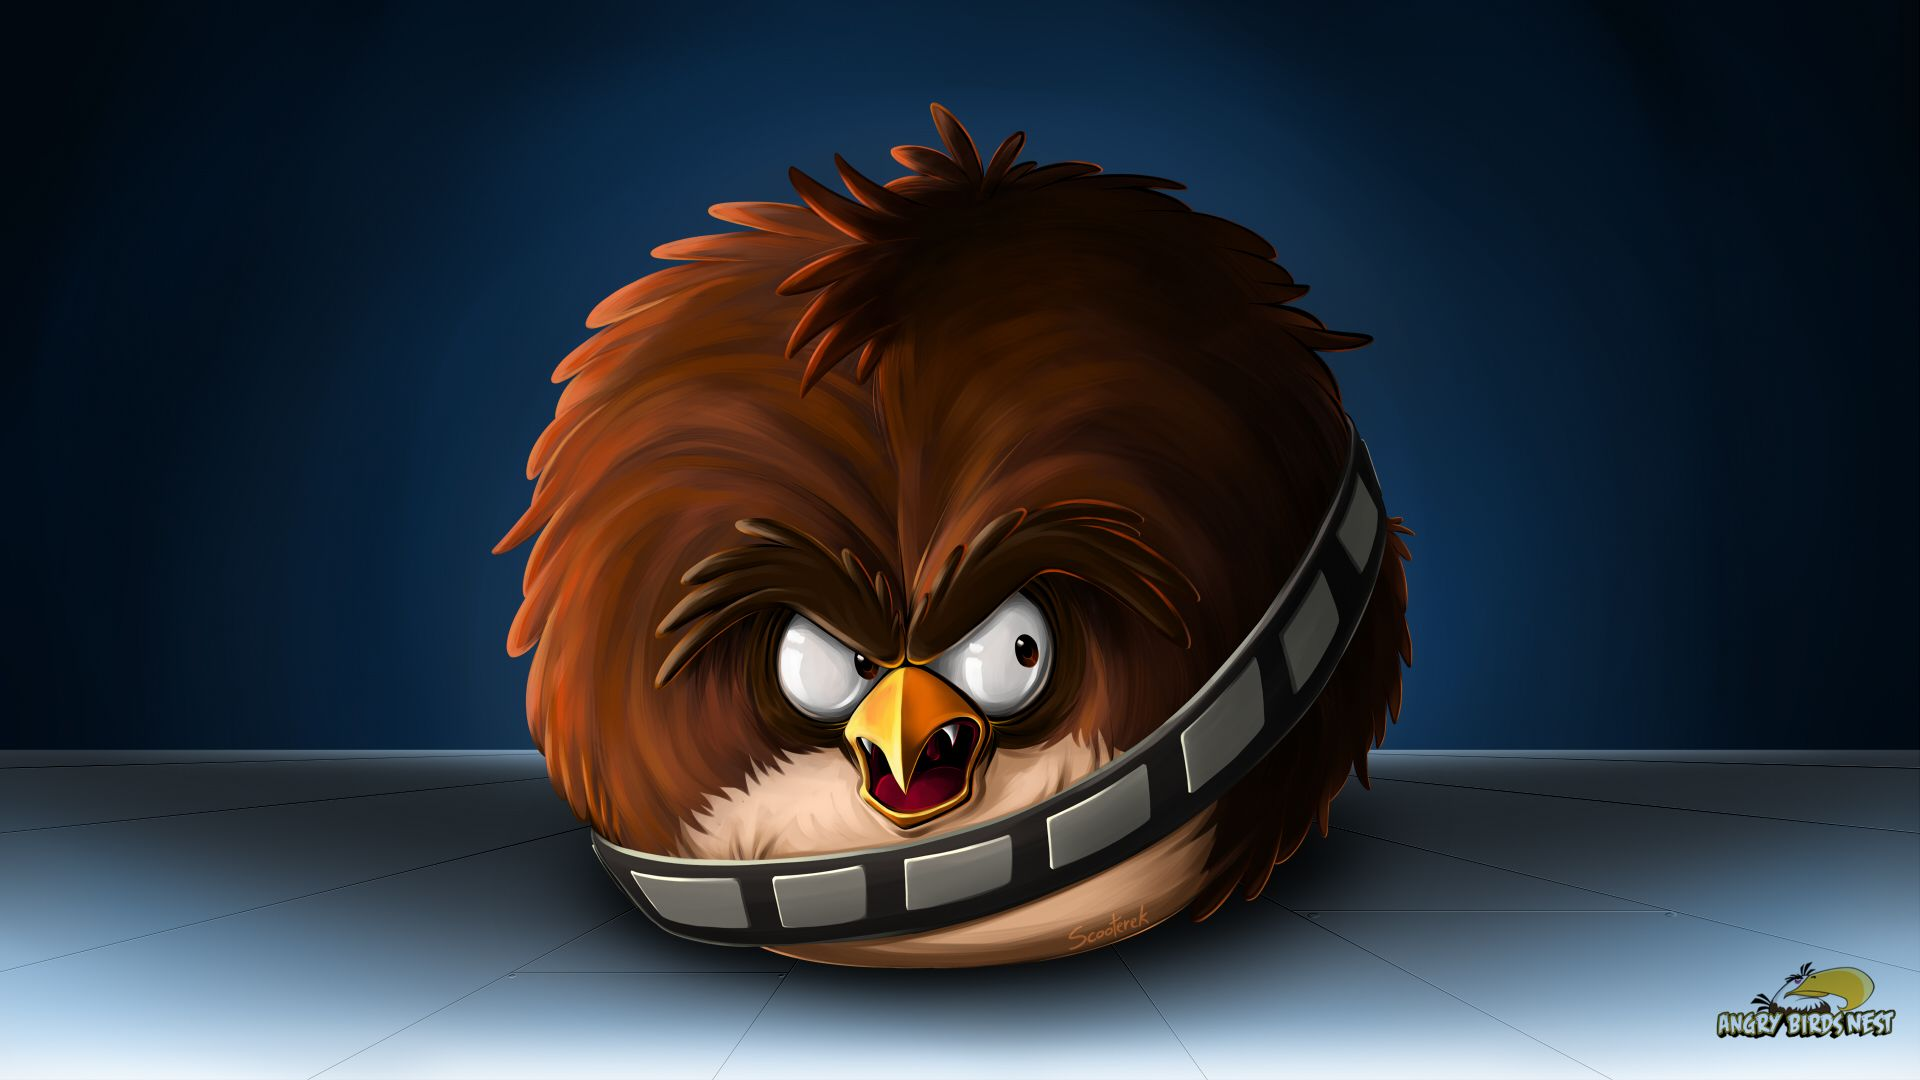 Angry Birds Star Wars Chewbacca Desktop Wallpaper! | angry ...